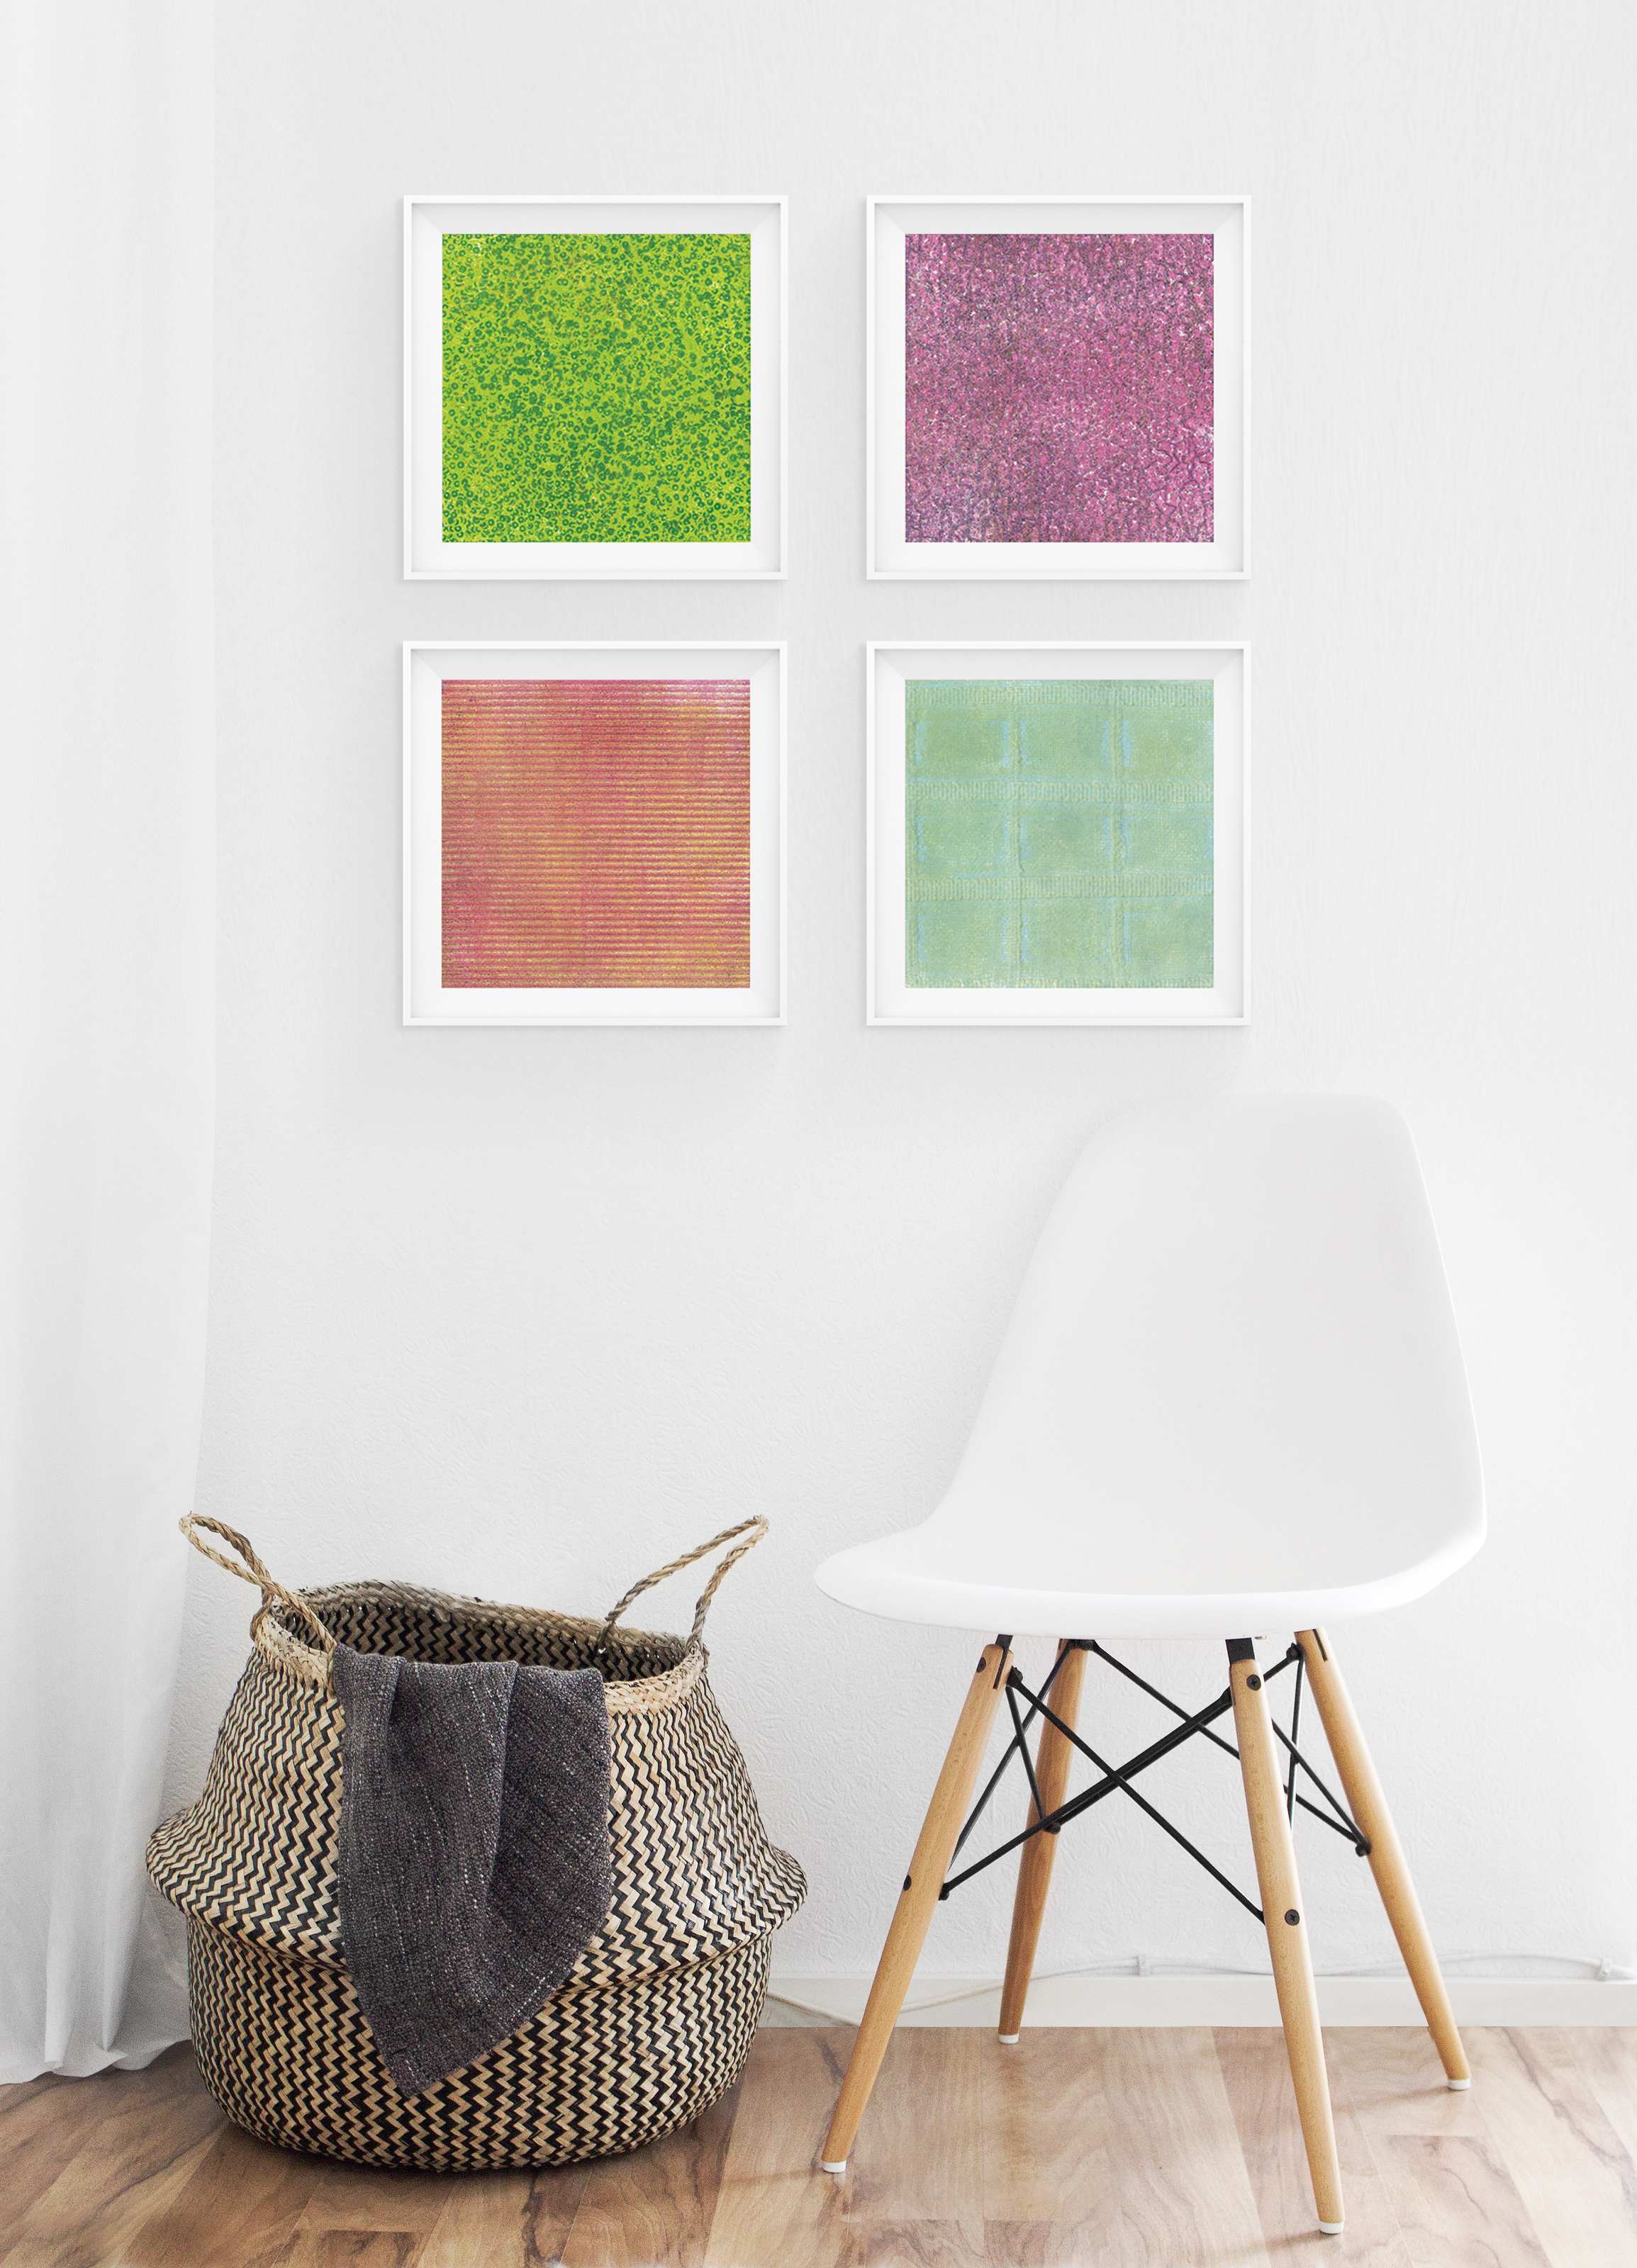 Experimental Prints Wall Art fro West Elm & Minted